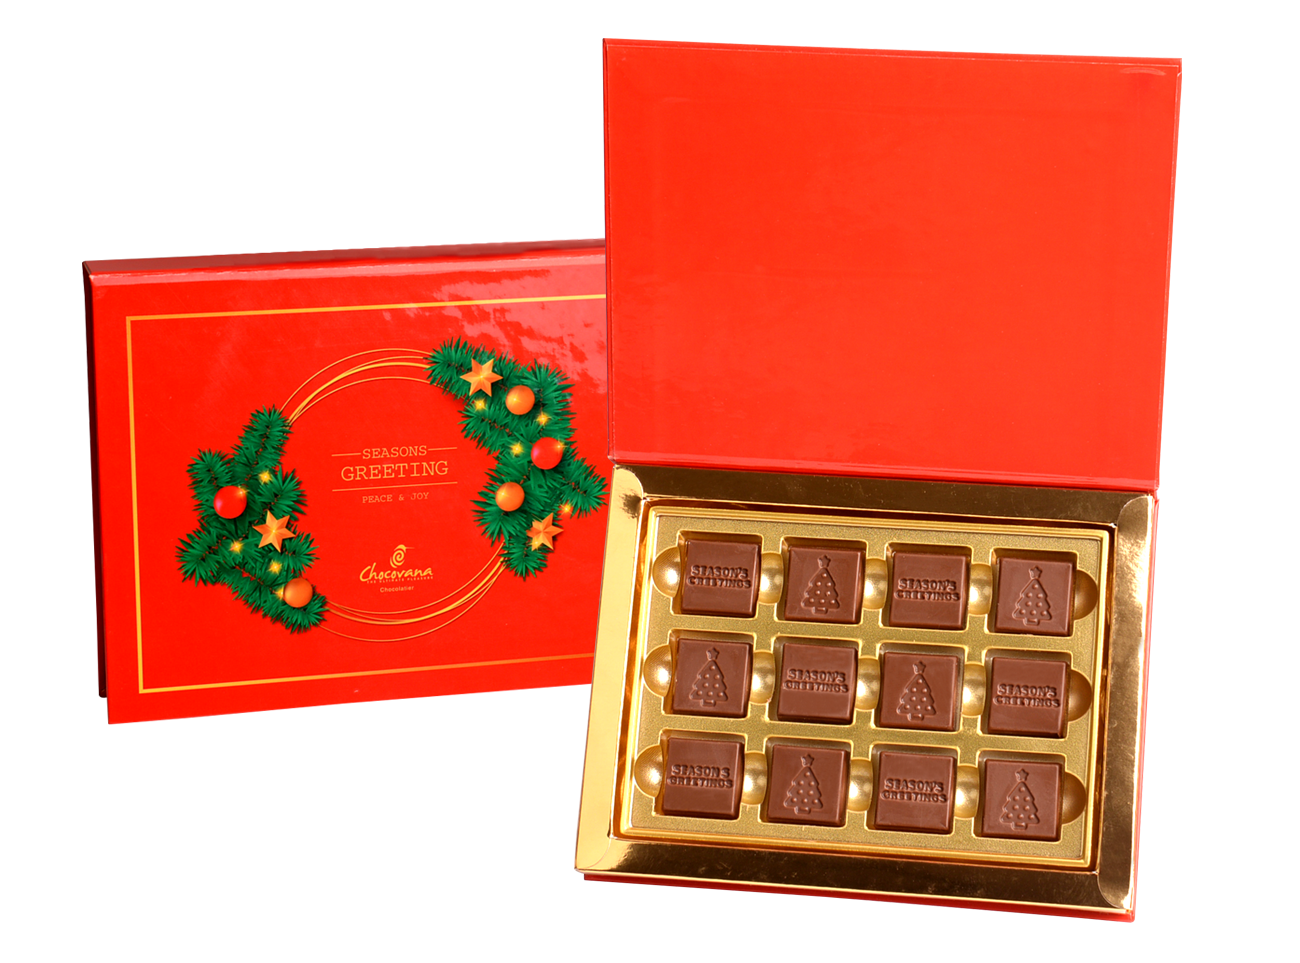 Gracious Seasons Greetings, 12 Pcs In Customized Belgian Chocolate